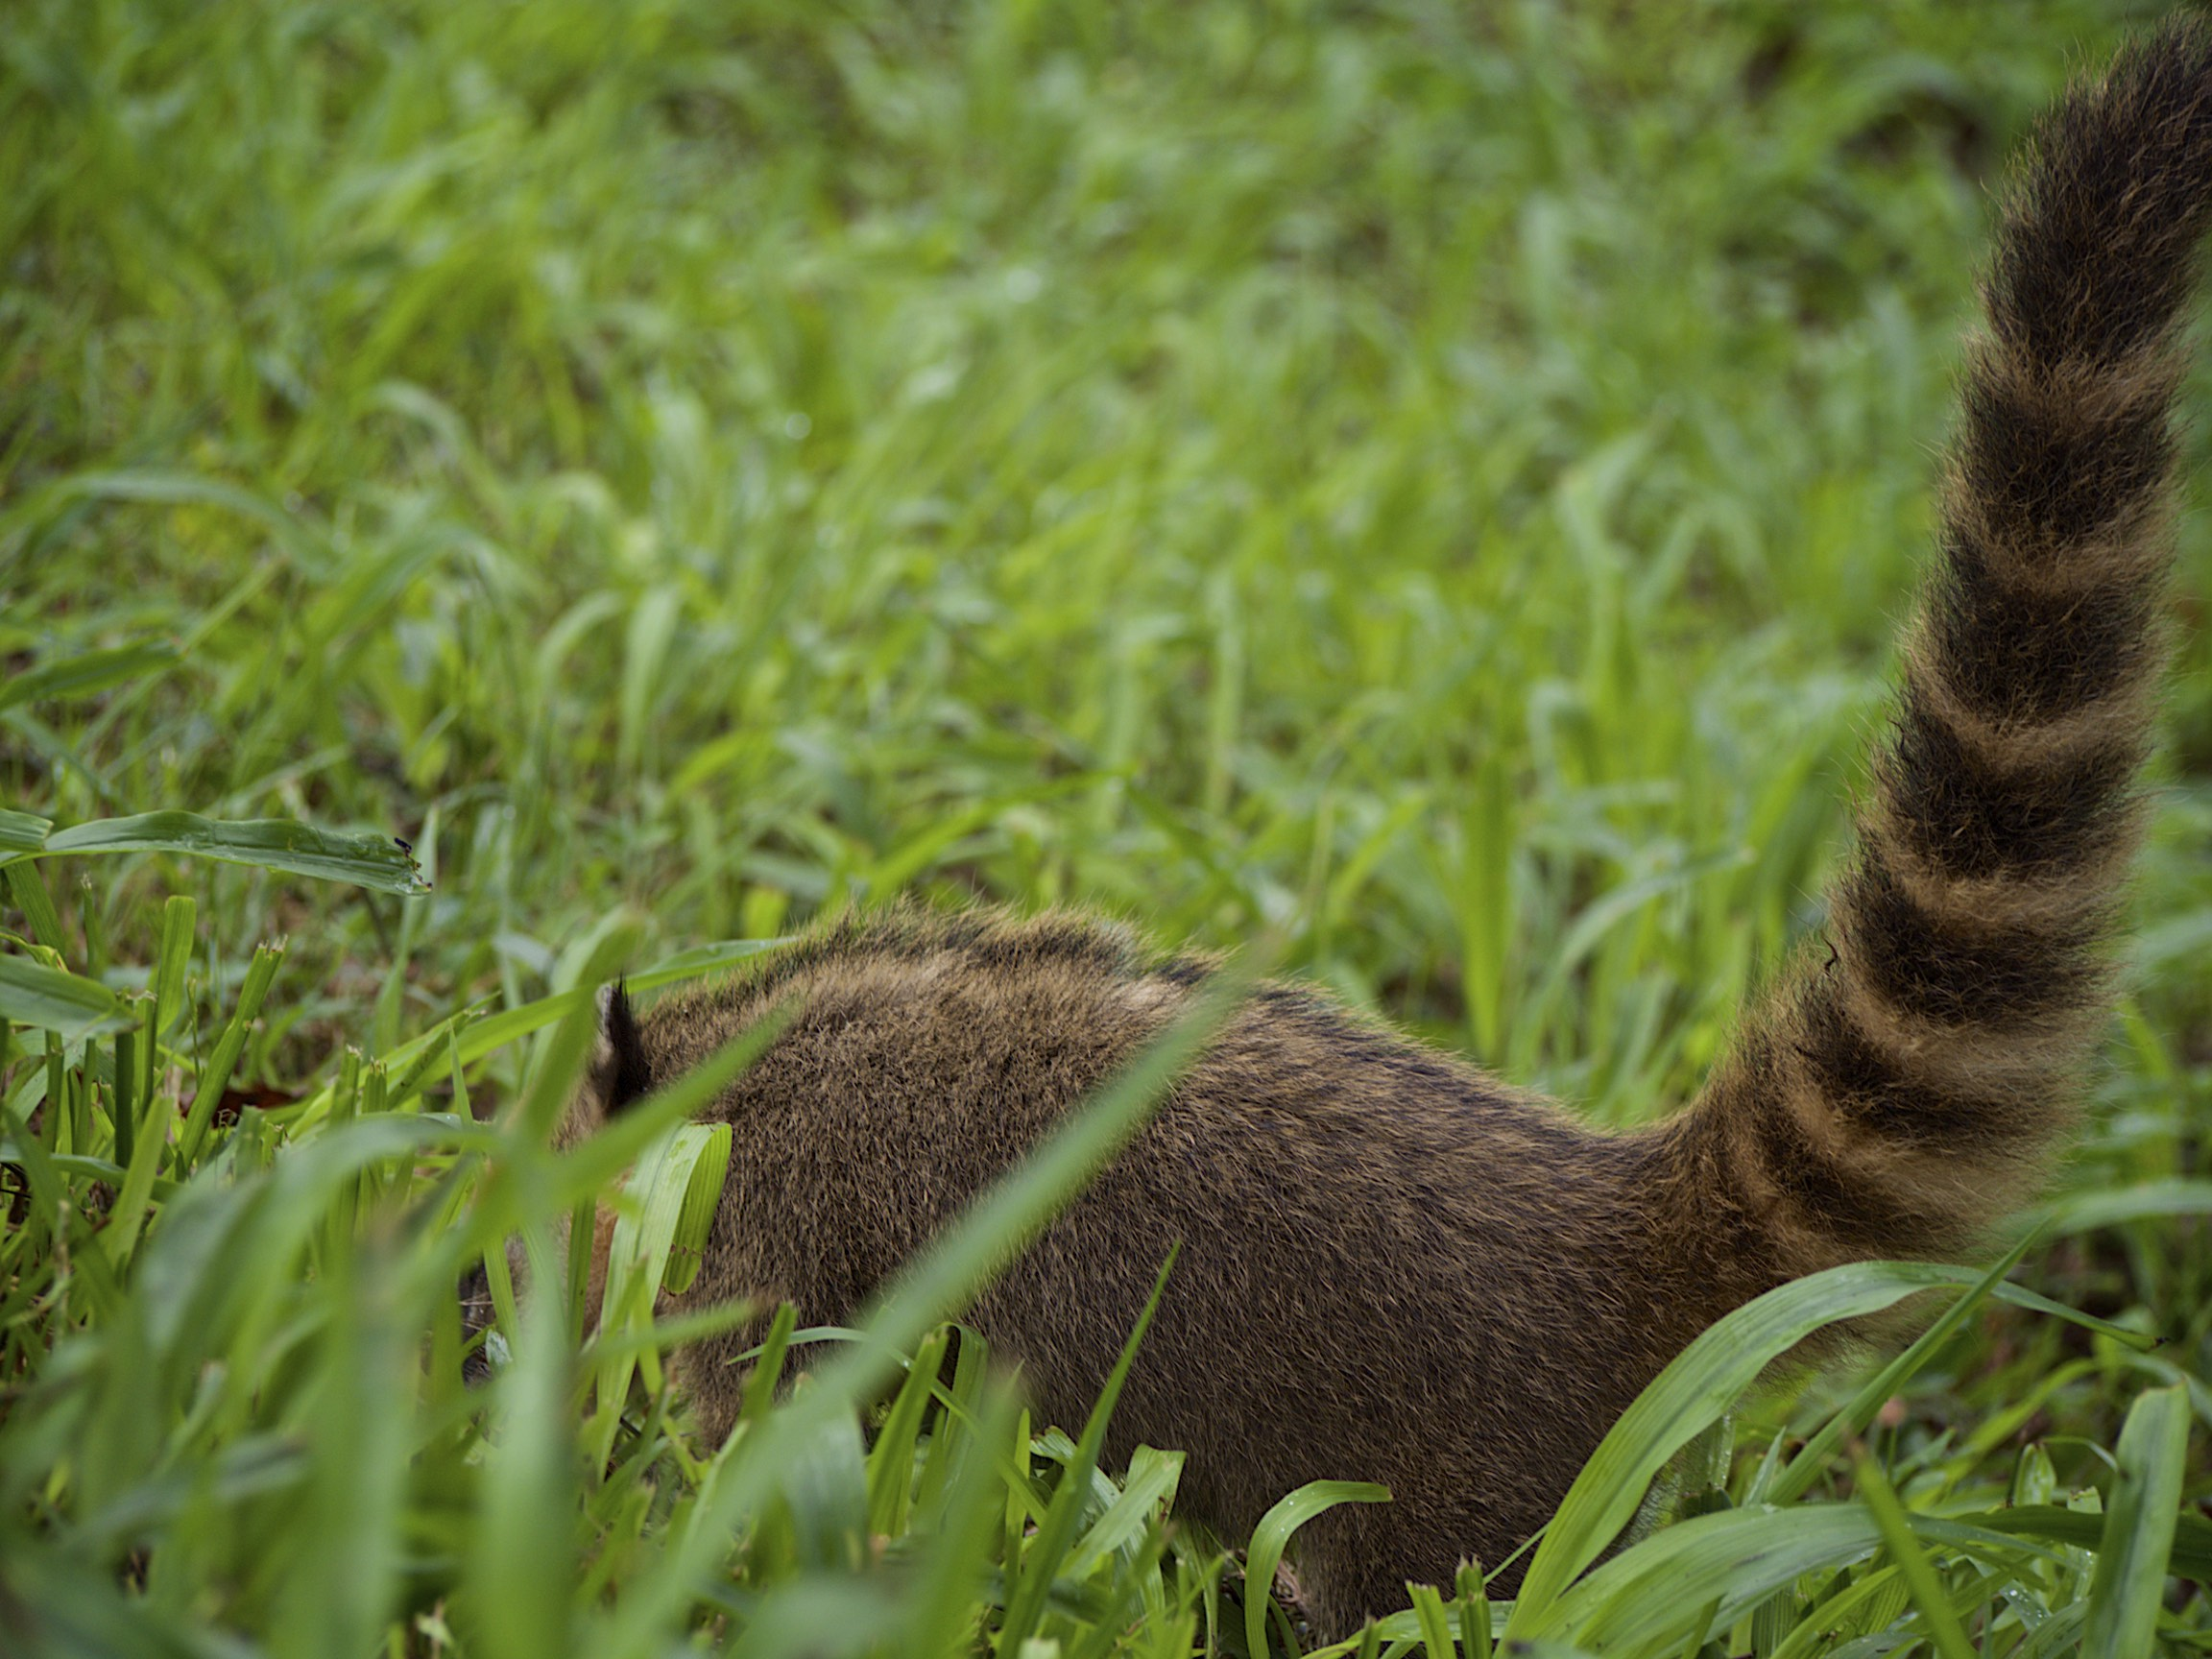 The South America Coati - they look friendly, but they are only after your supper!